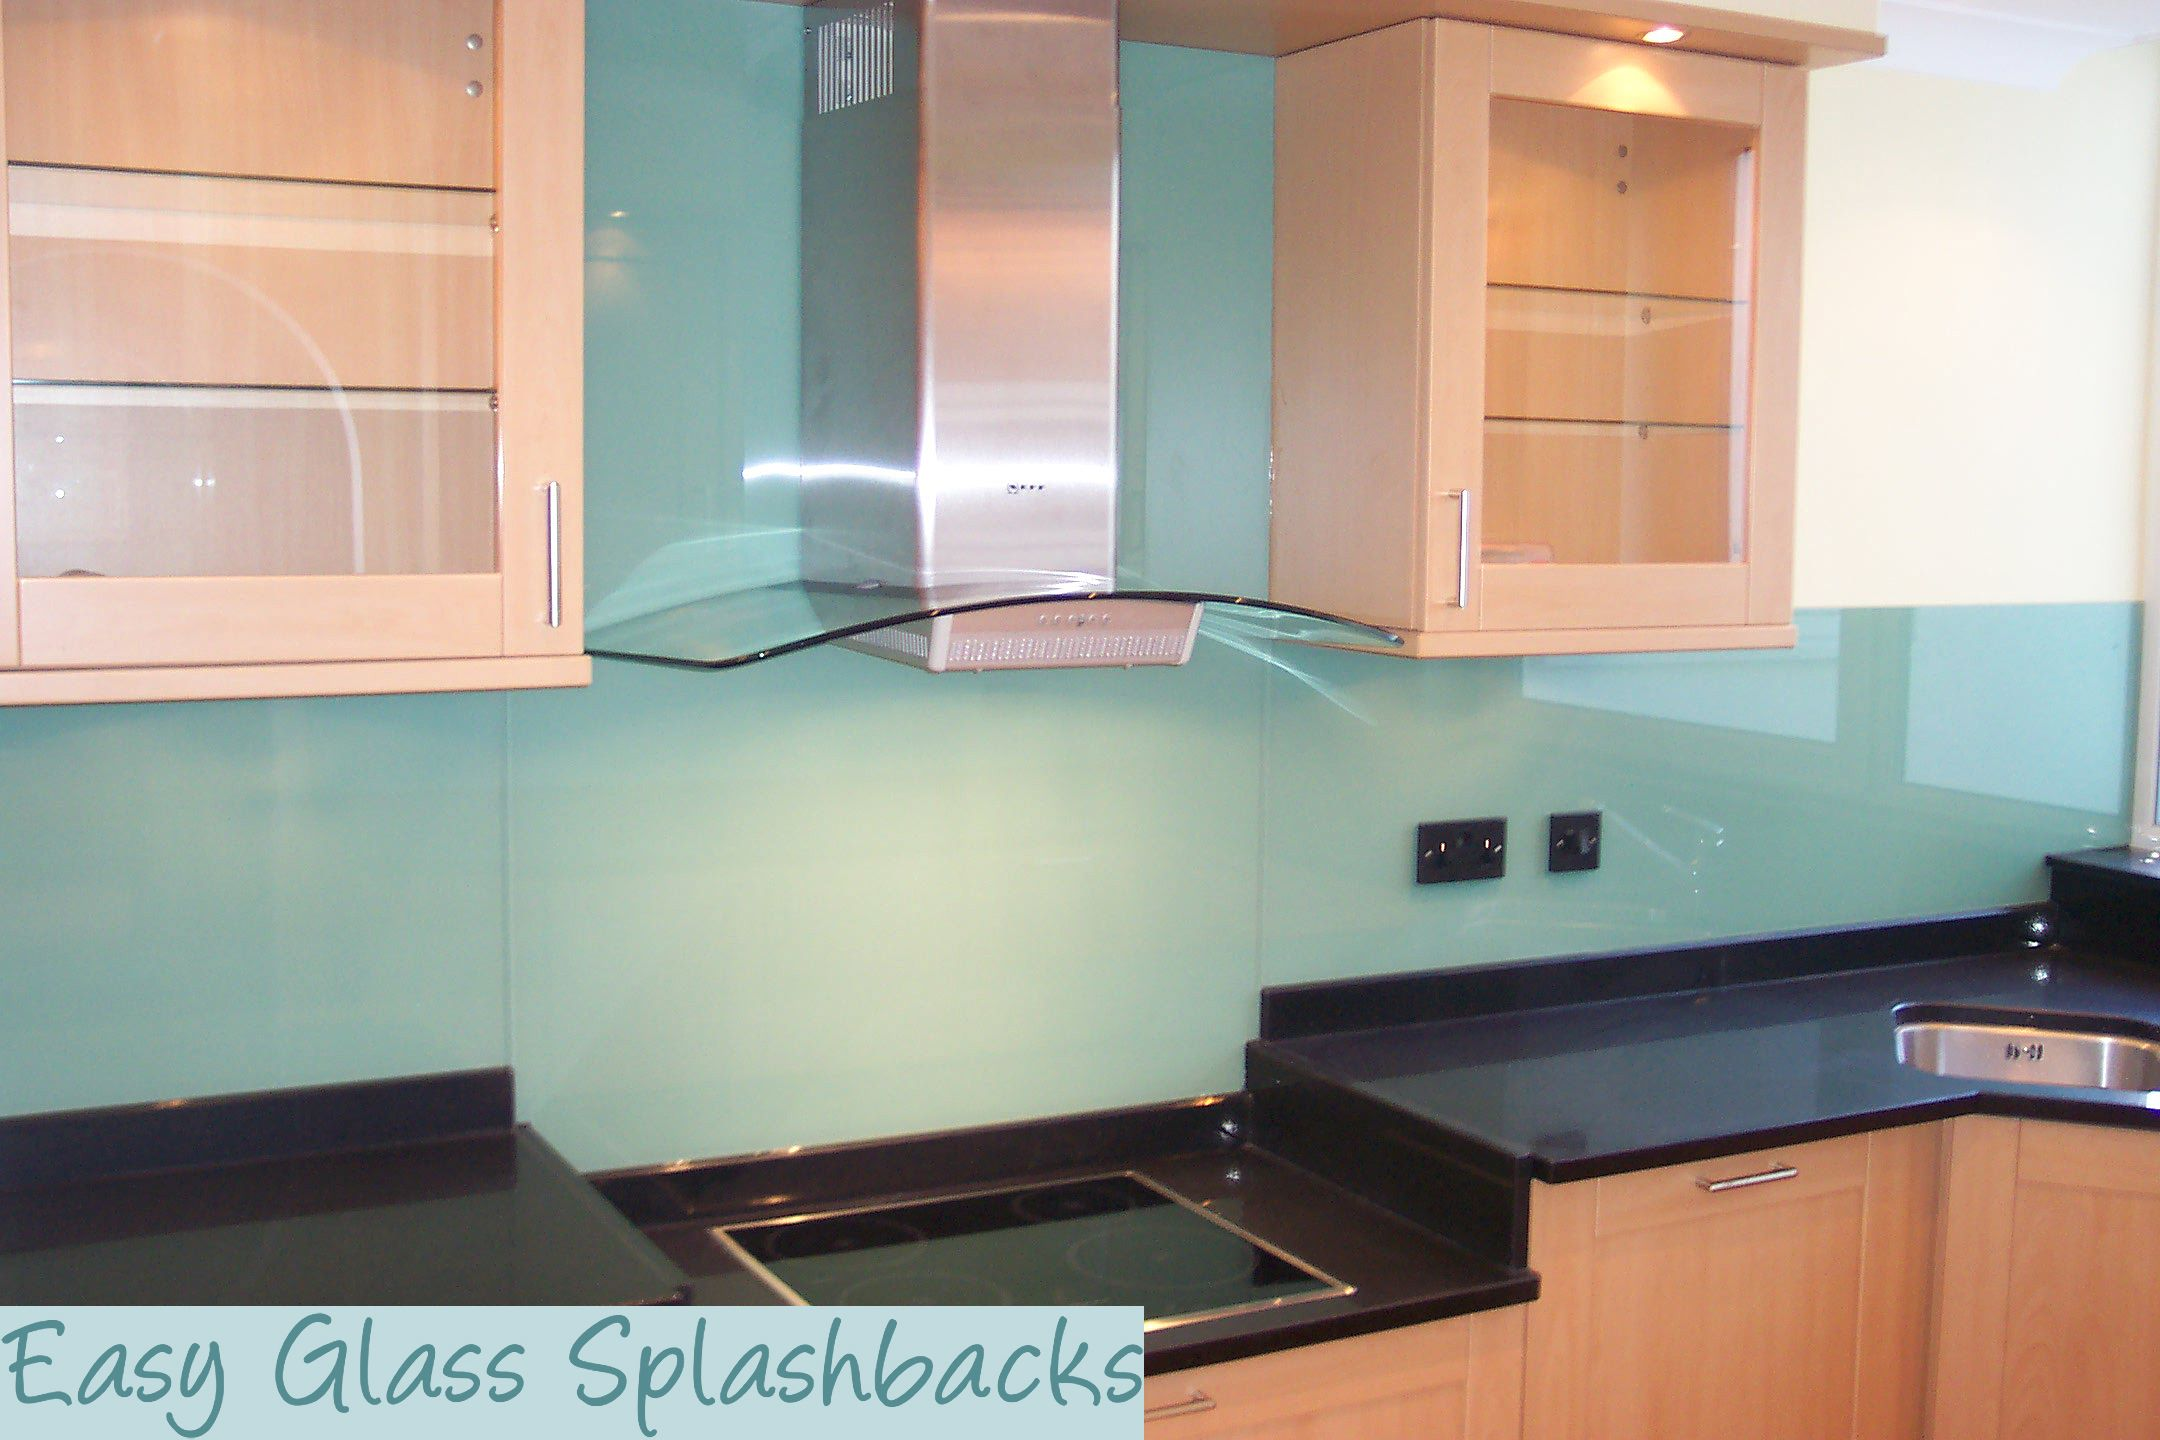 Mint Green coloured glass splashback in a Beech Kitchen with Black ...